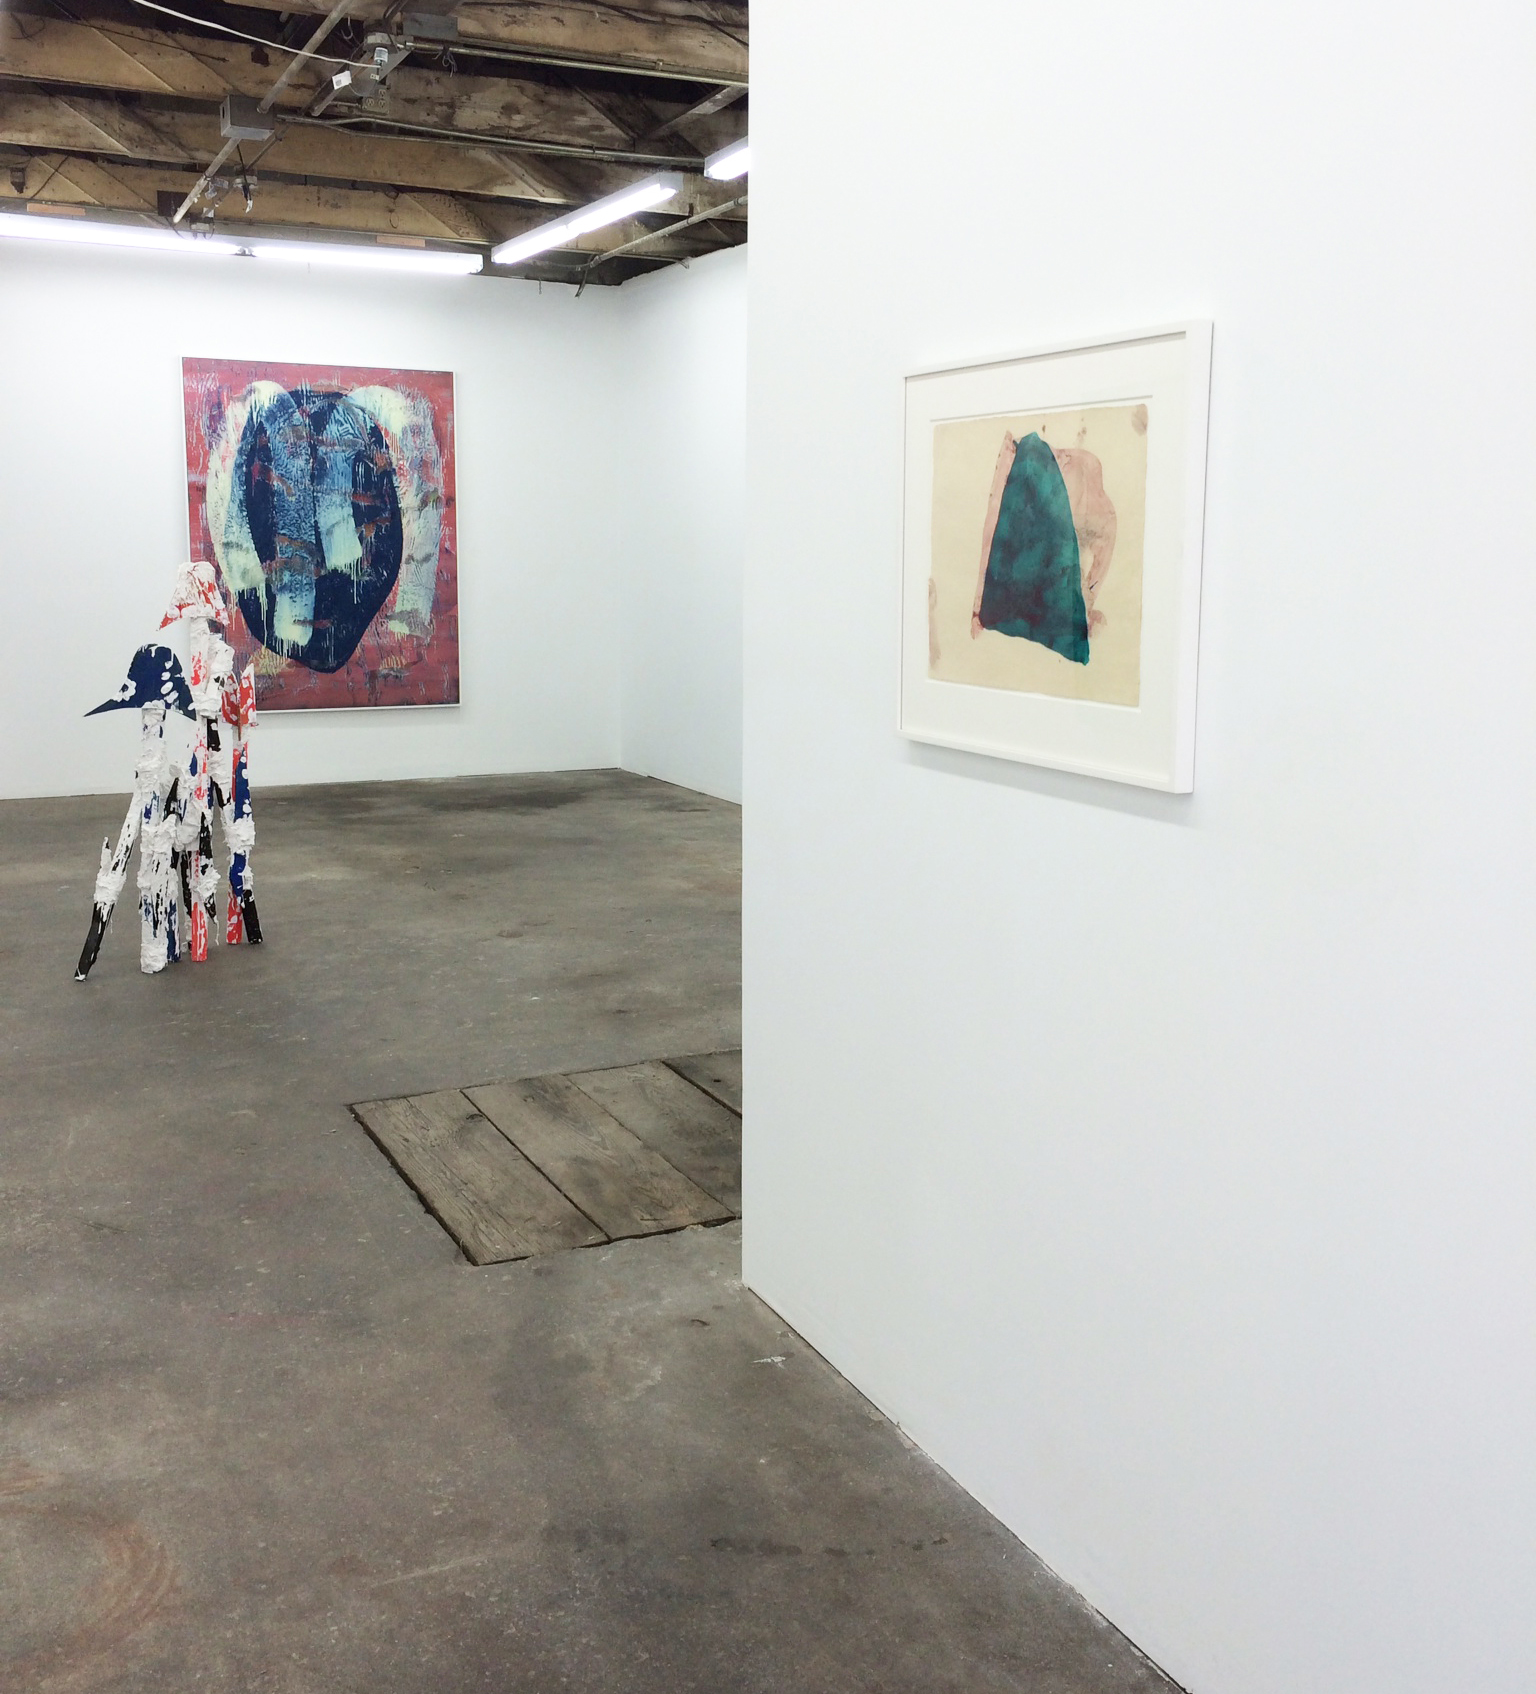 Installation shot Florian Morlat, Jon Pestoni and Mary Weatherford